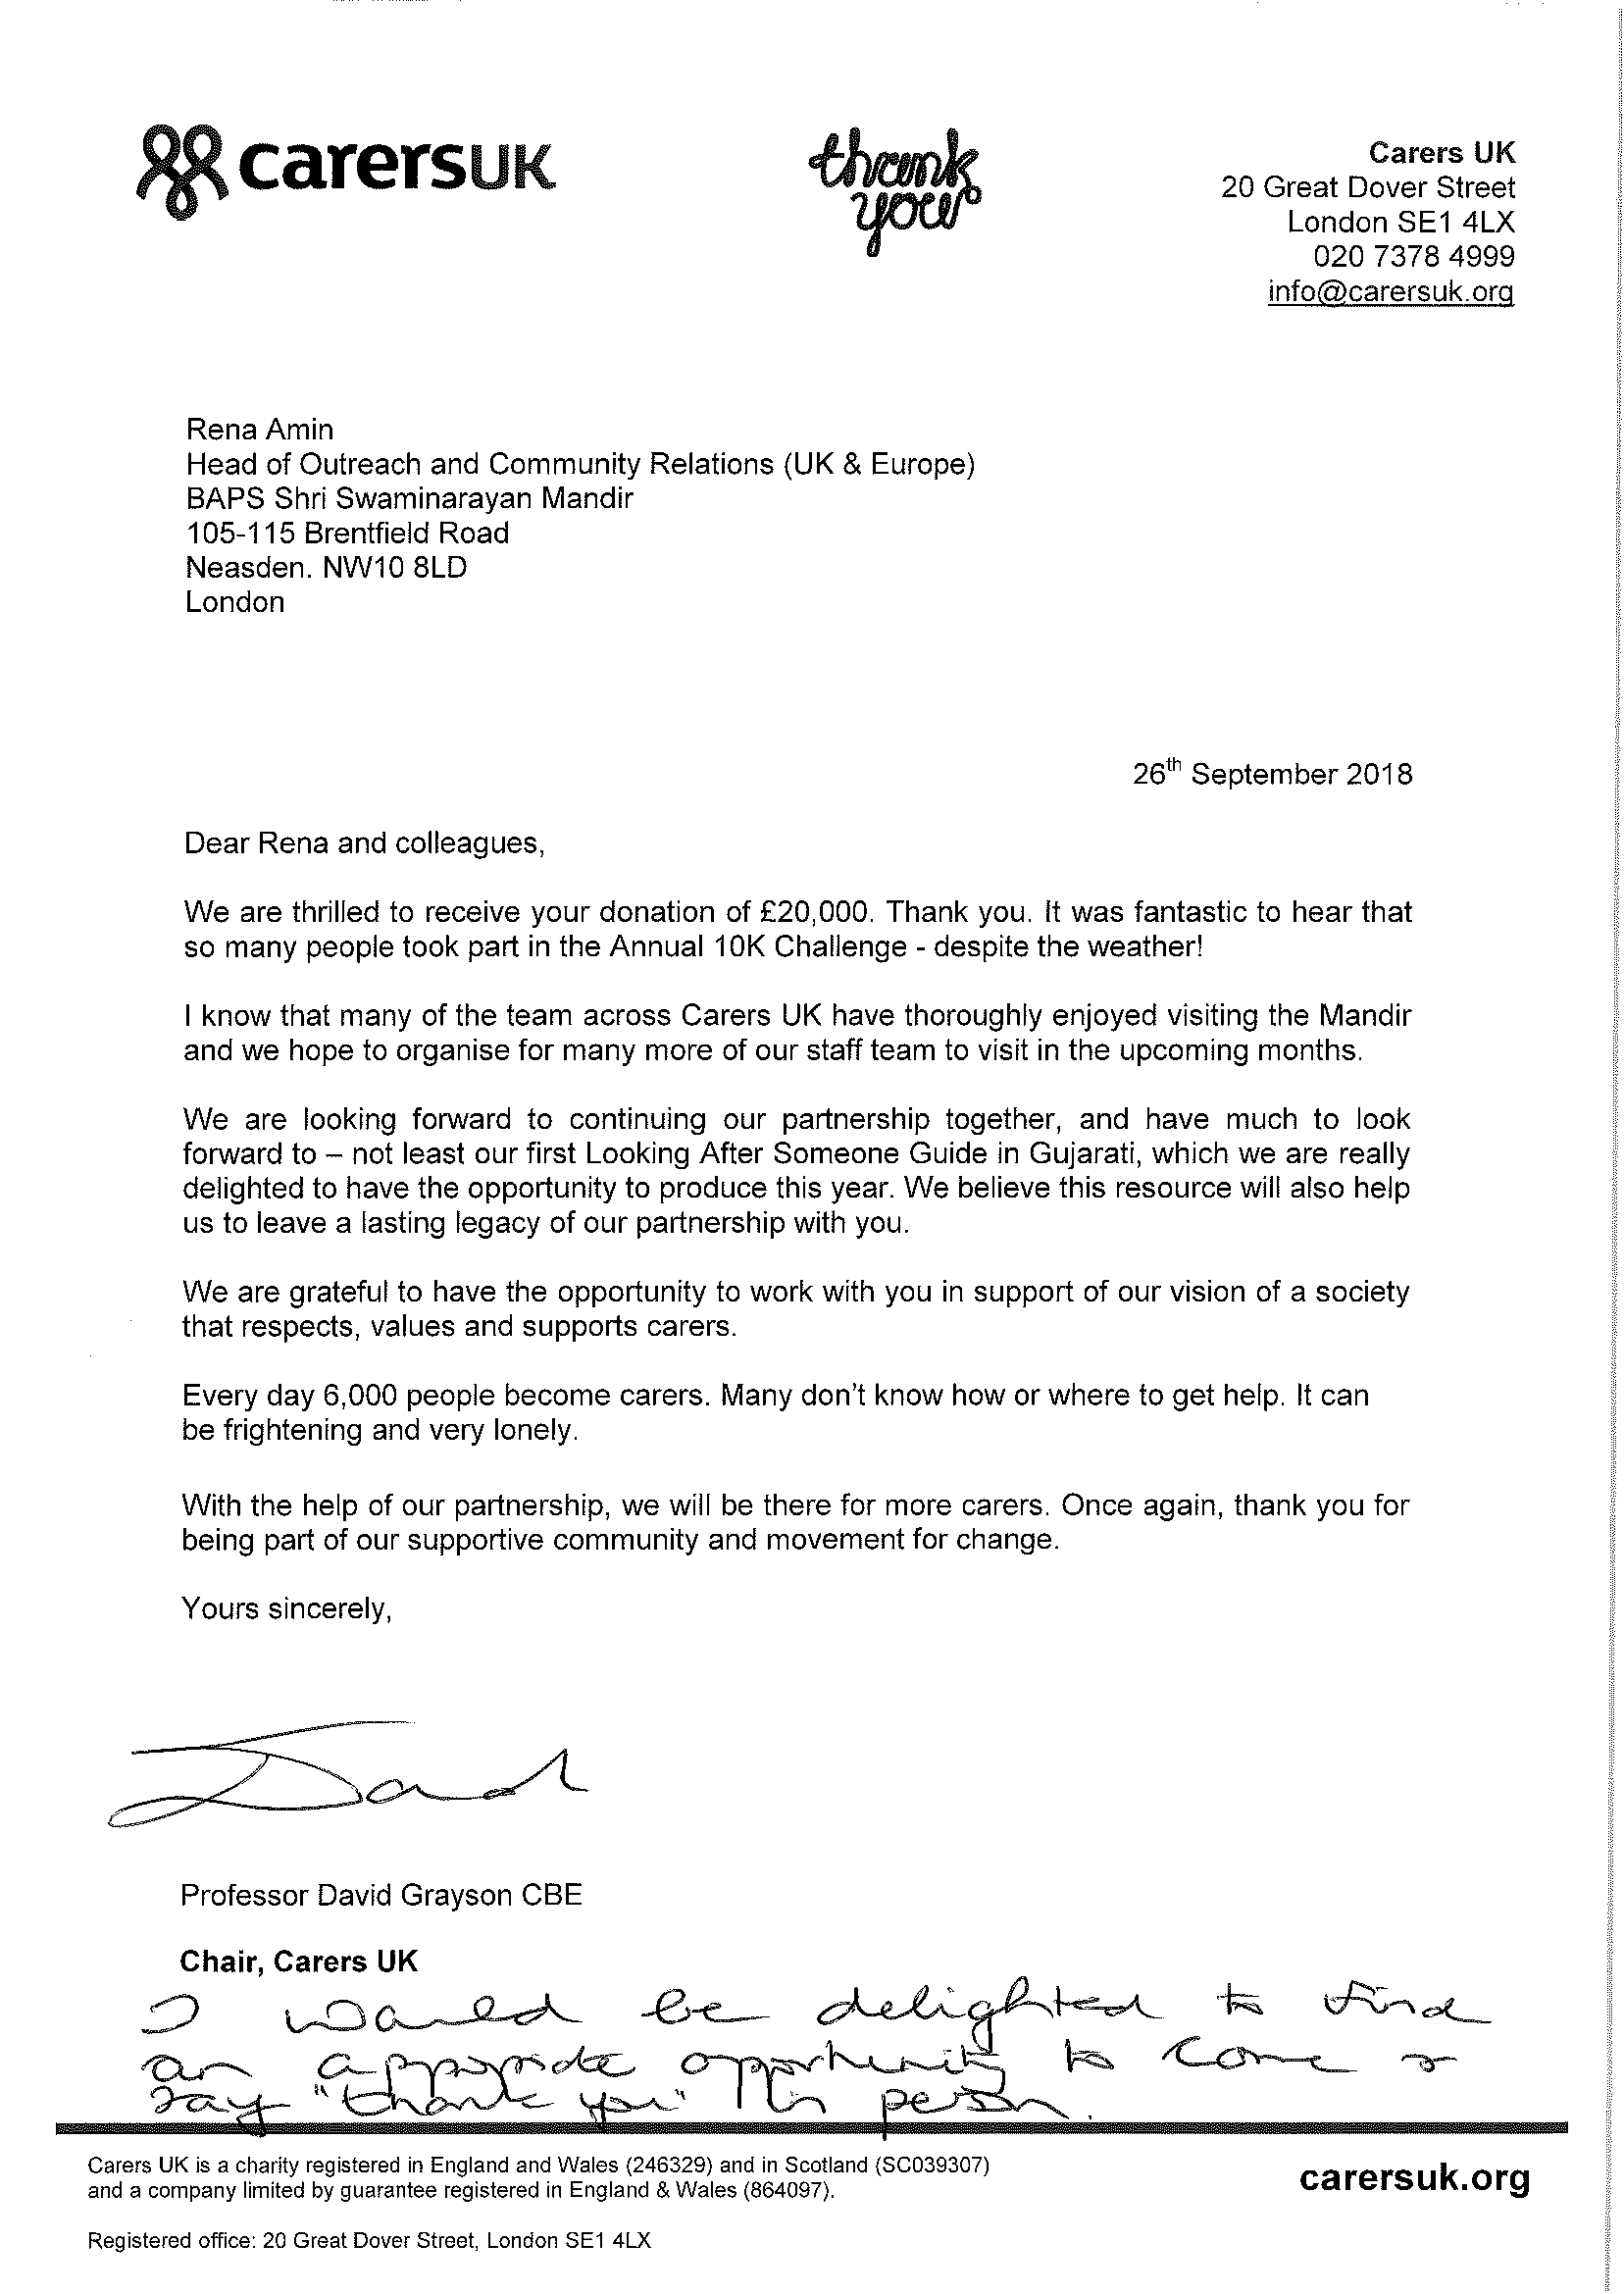 Letter from Carers UK - 26 Sept 2018